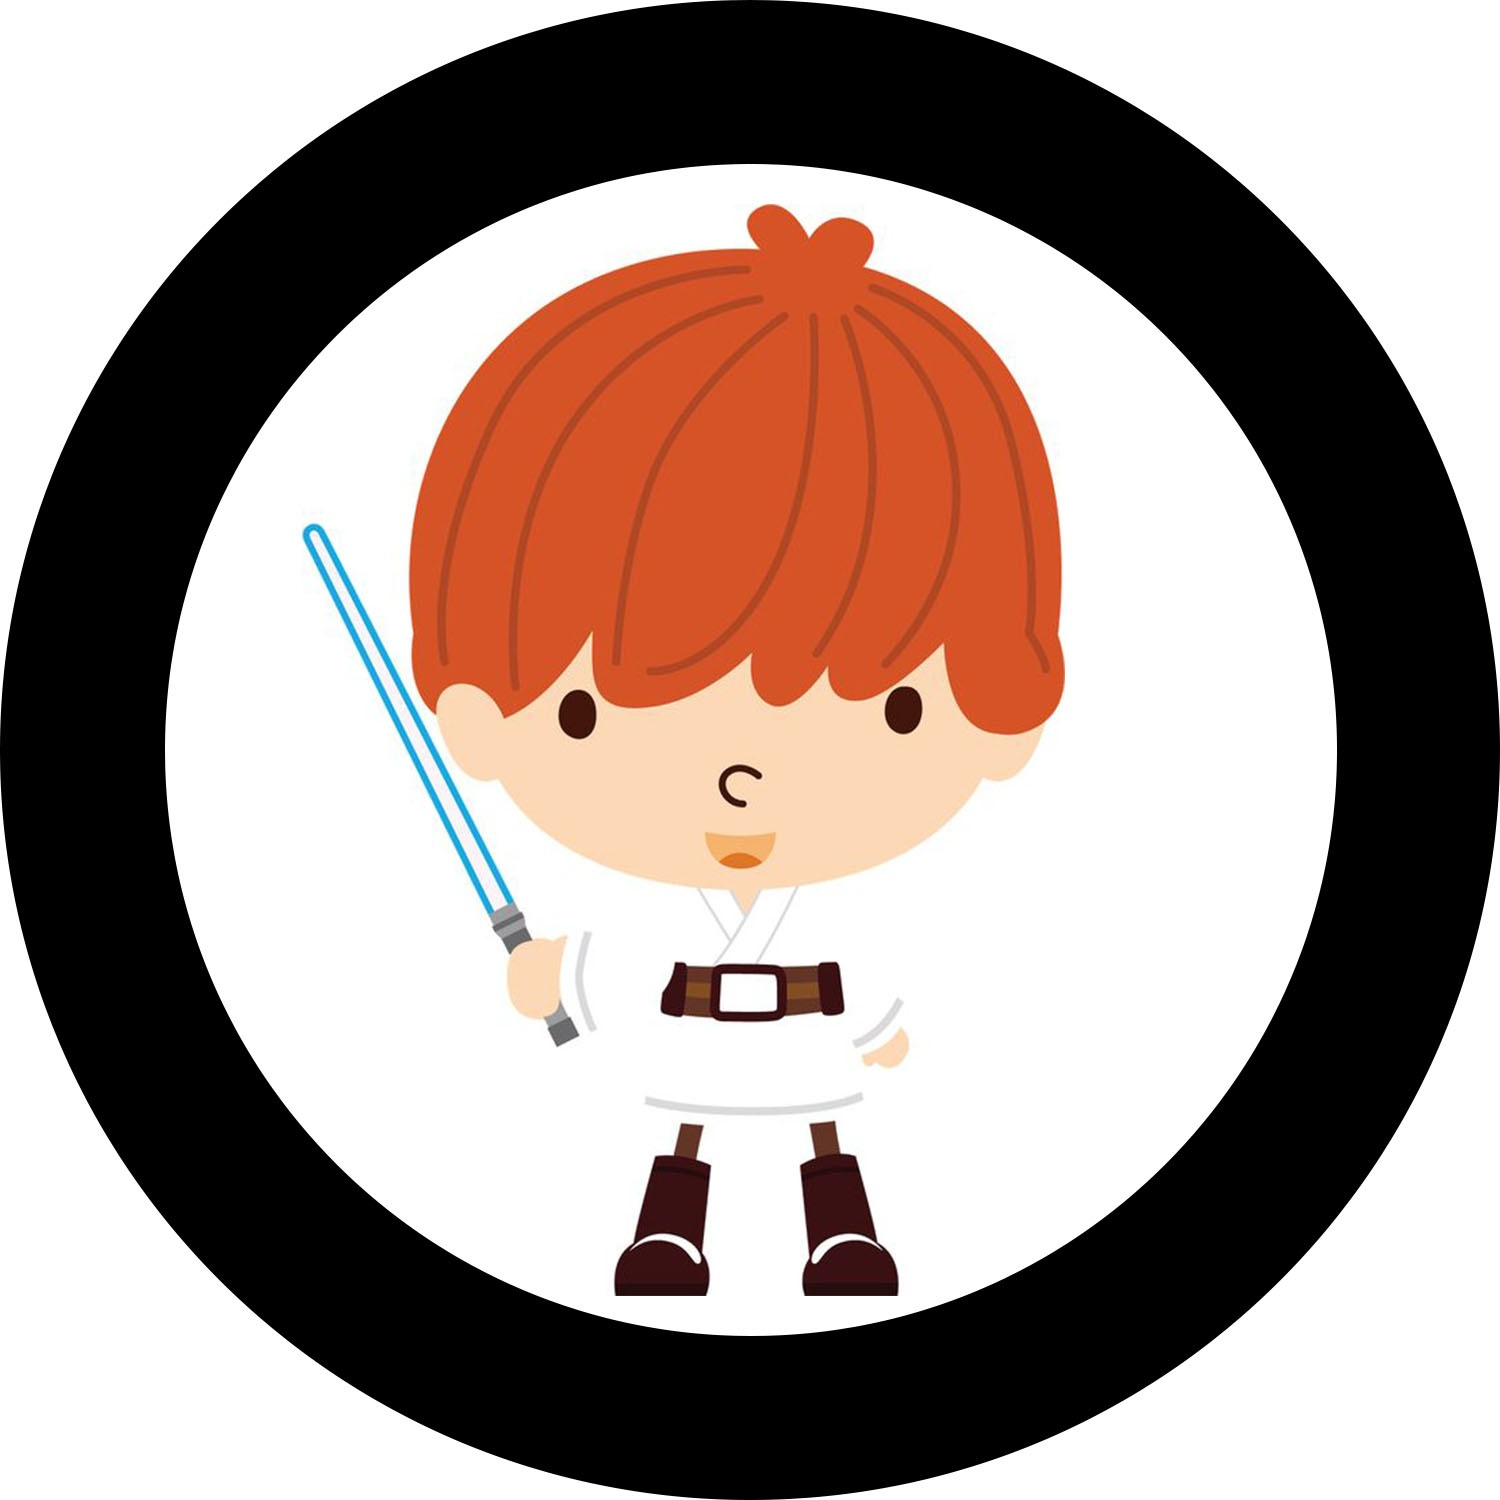 Star Wars Babies: Free Printable Toppers And Wrappers For Cupcakes - Free Printable Train Cupcake Toppers